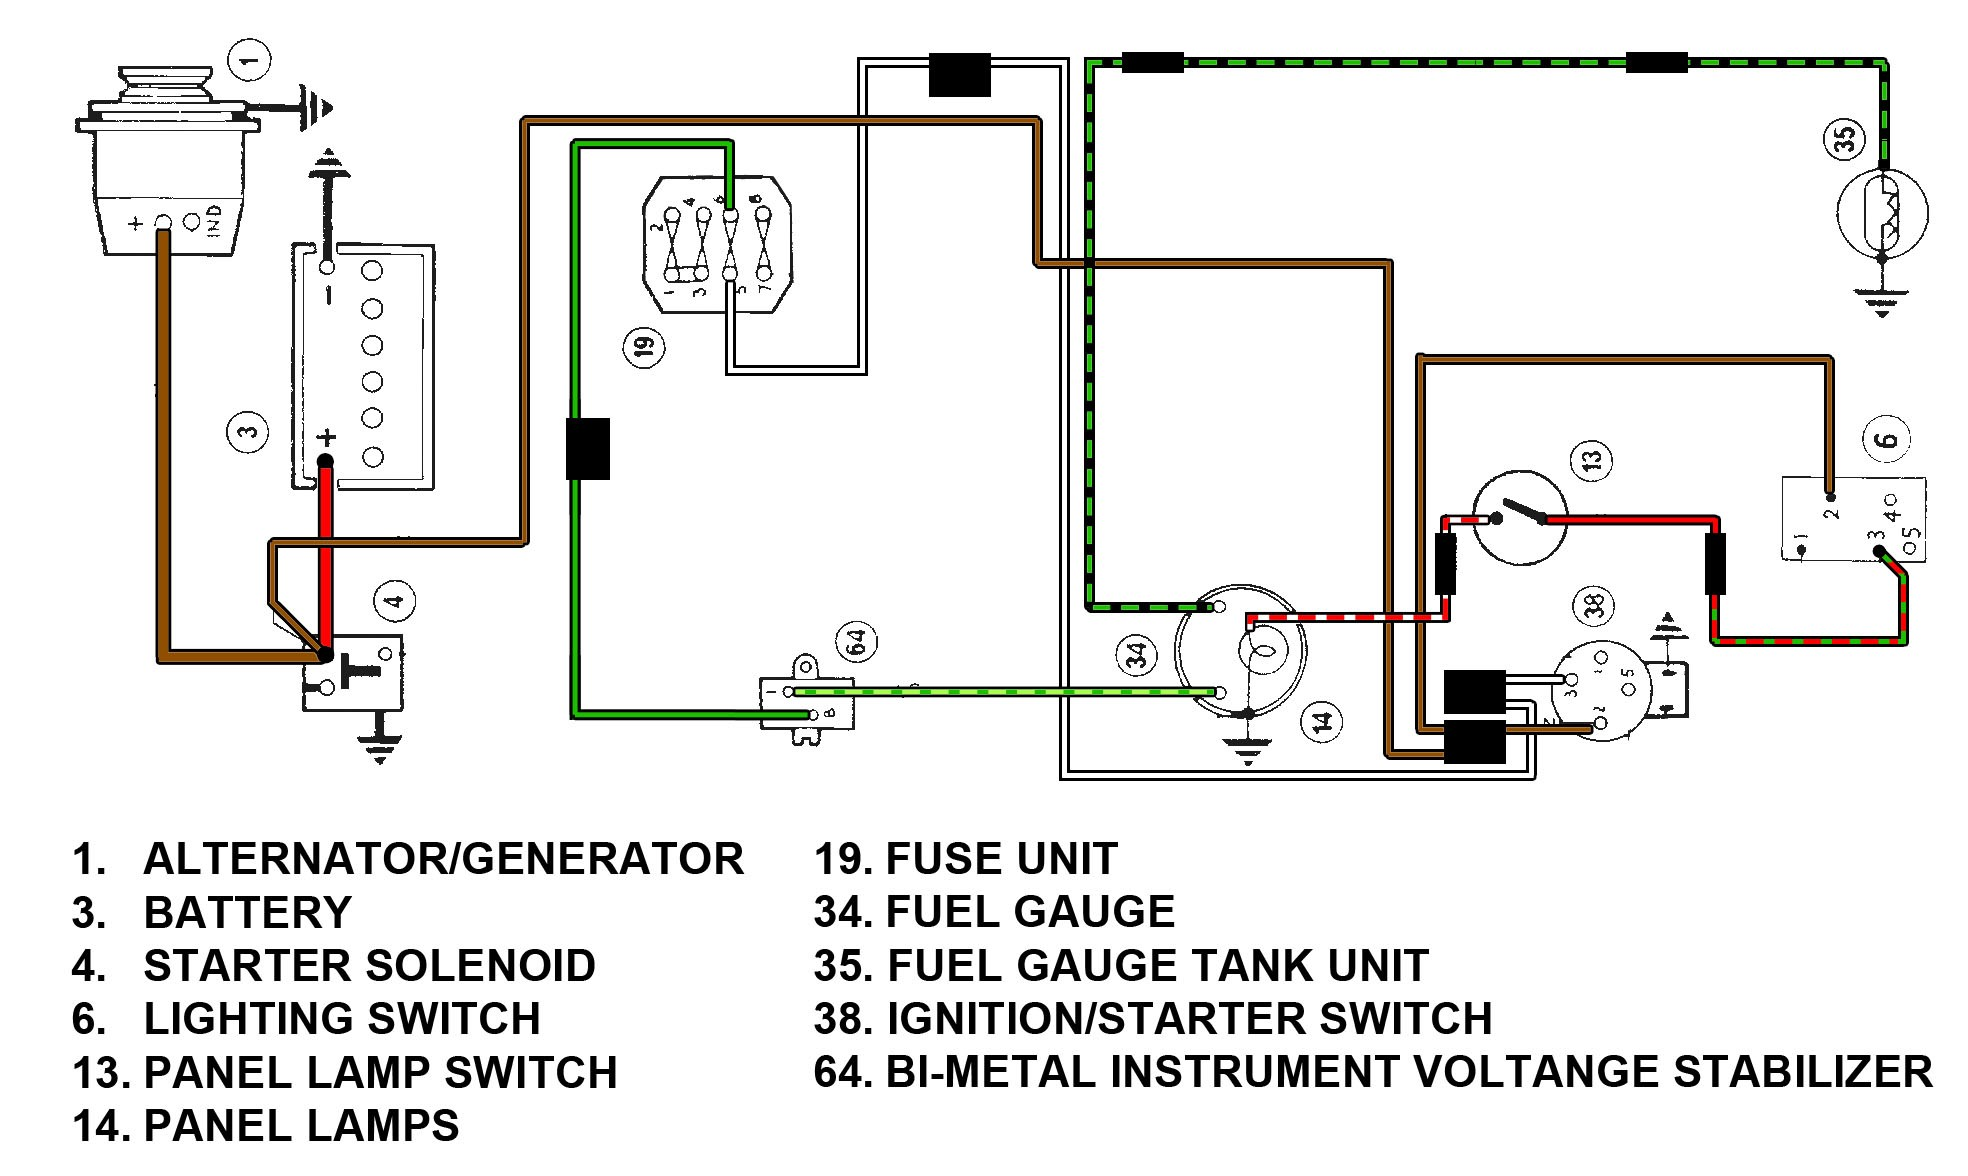 vdo gauge wiring diagram voltage schema wiring diagram vdo oil pressure gauge wiring vdo tachometer wiring diagram wiring diagram marine gauge wiring diagram vdo gauge wiring diagram voltage